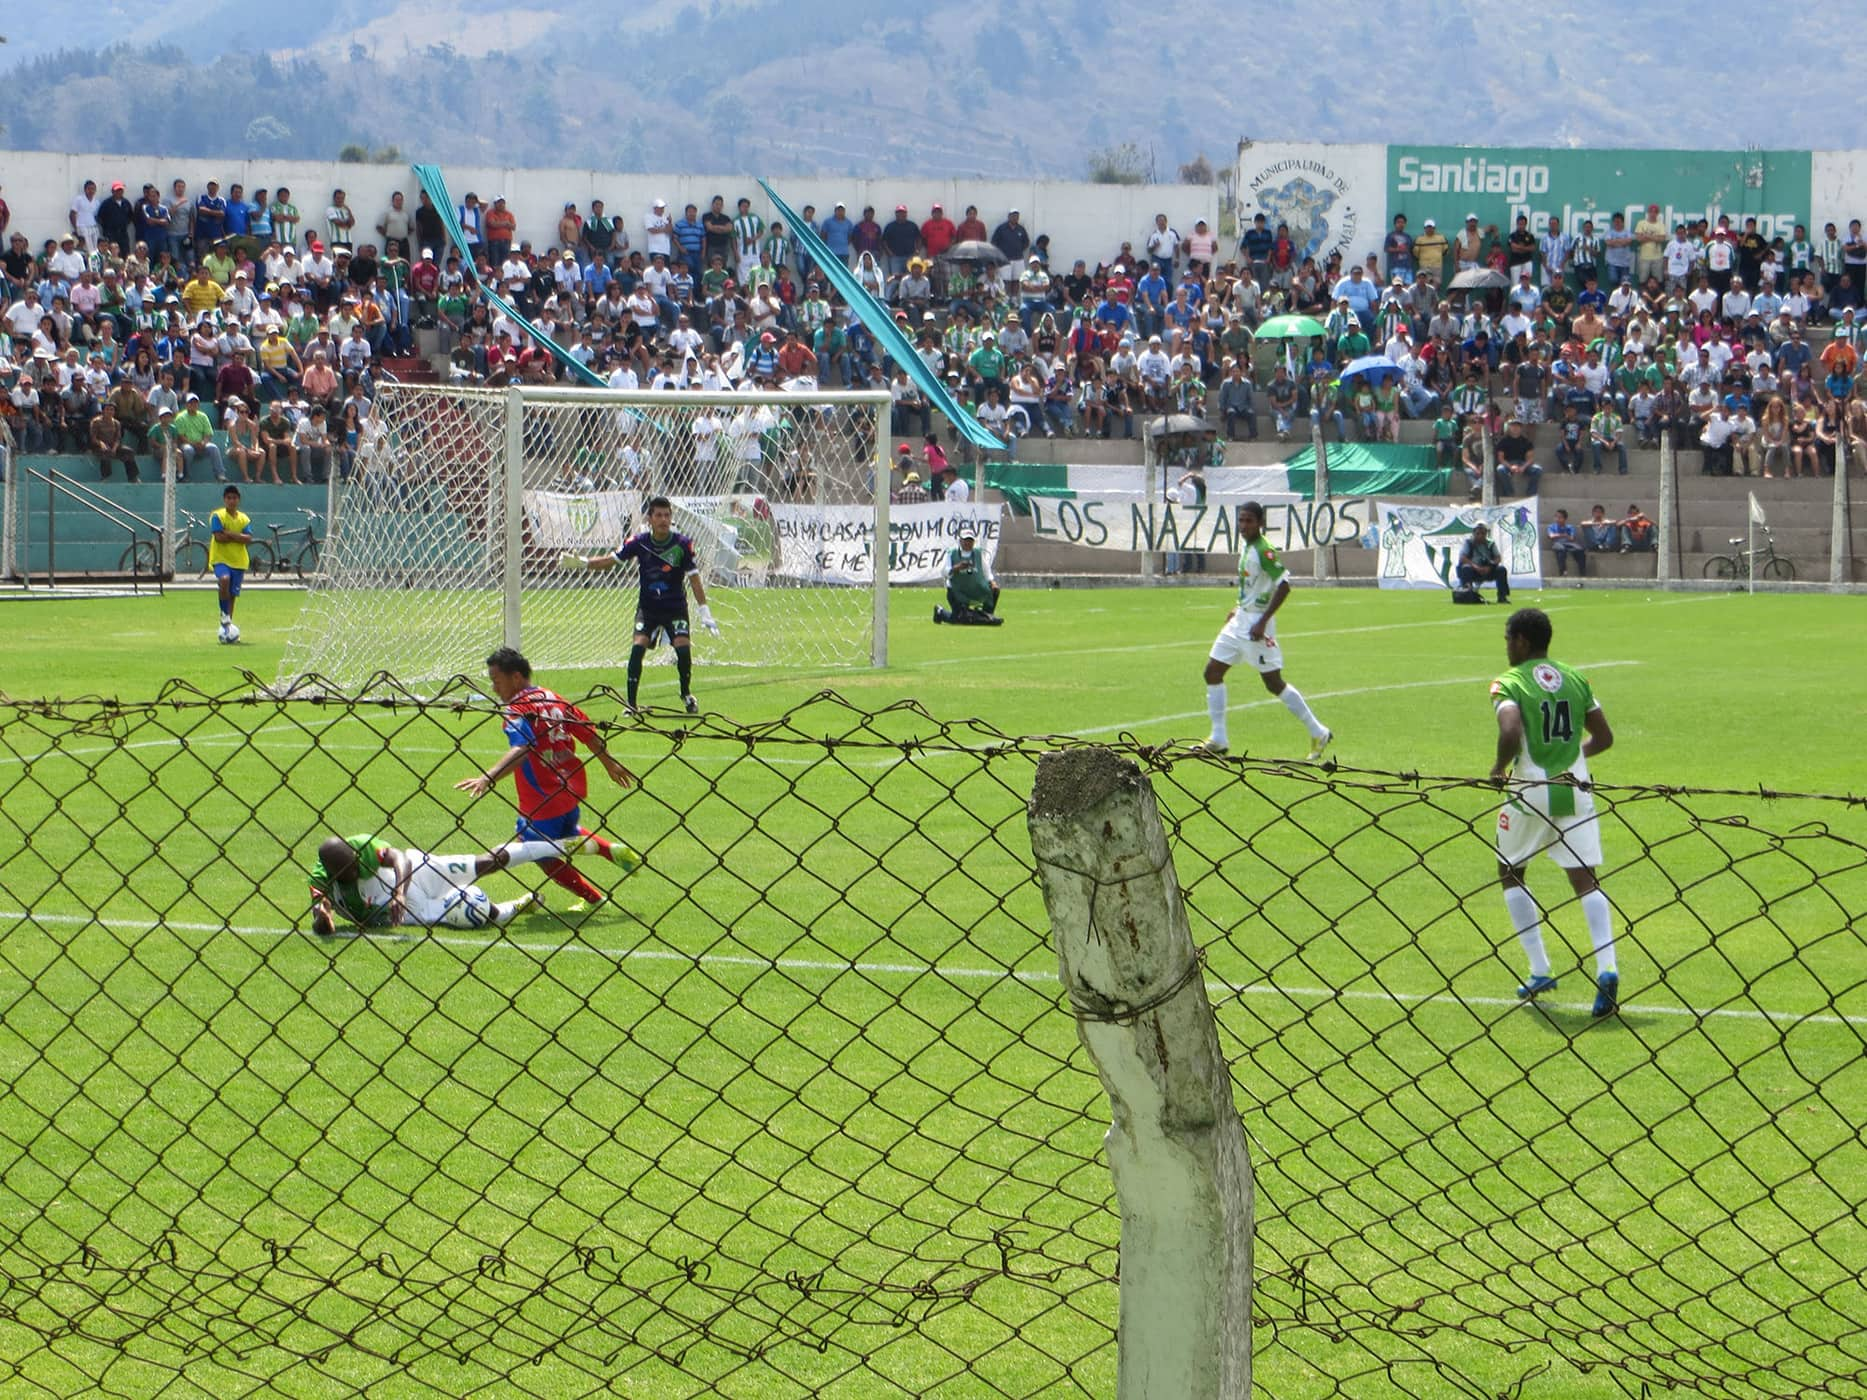 Football (soccer) game in Antigua, Guatemala